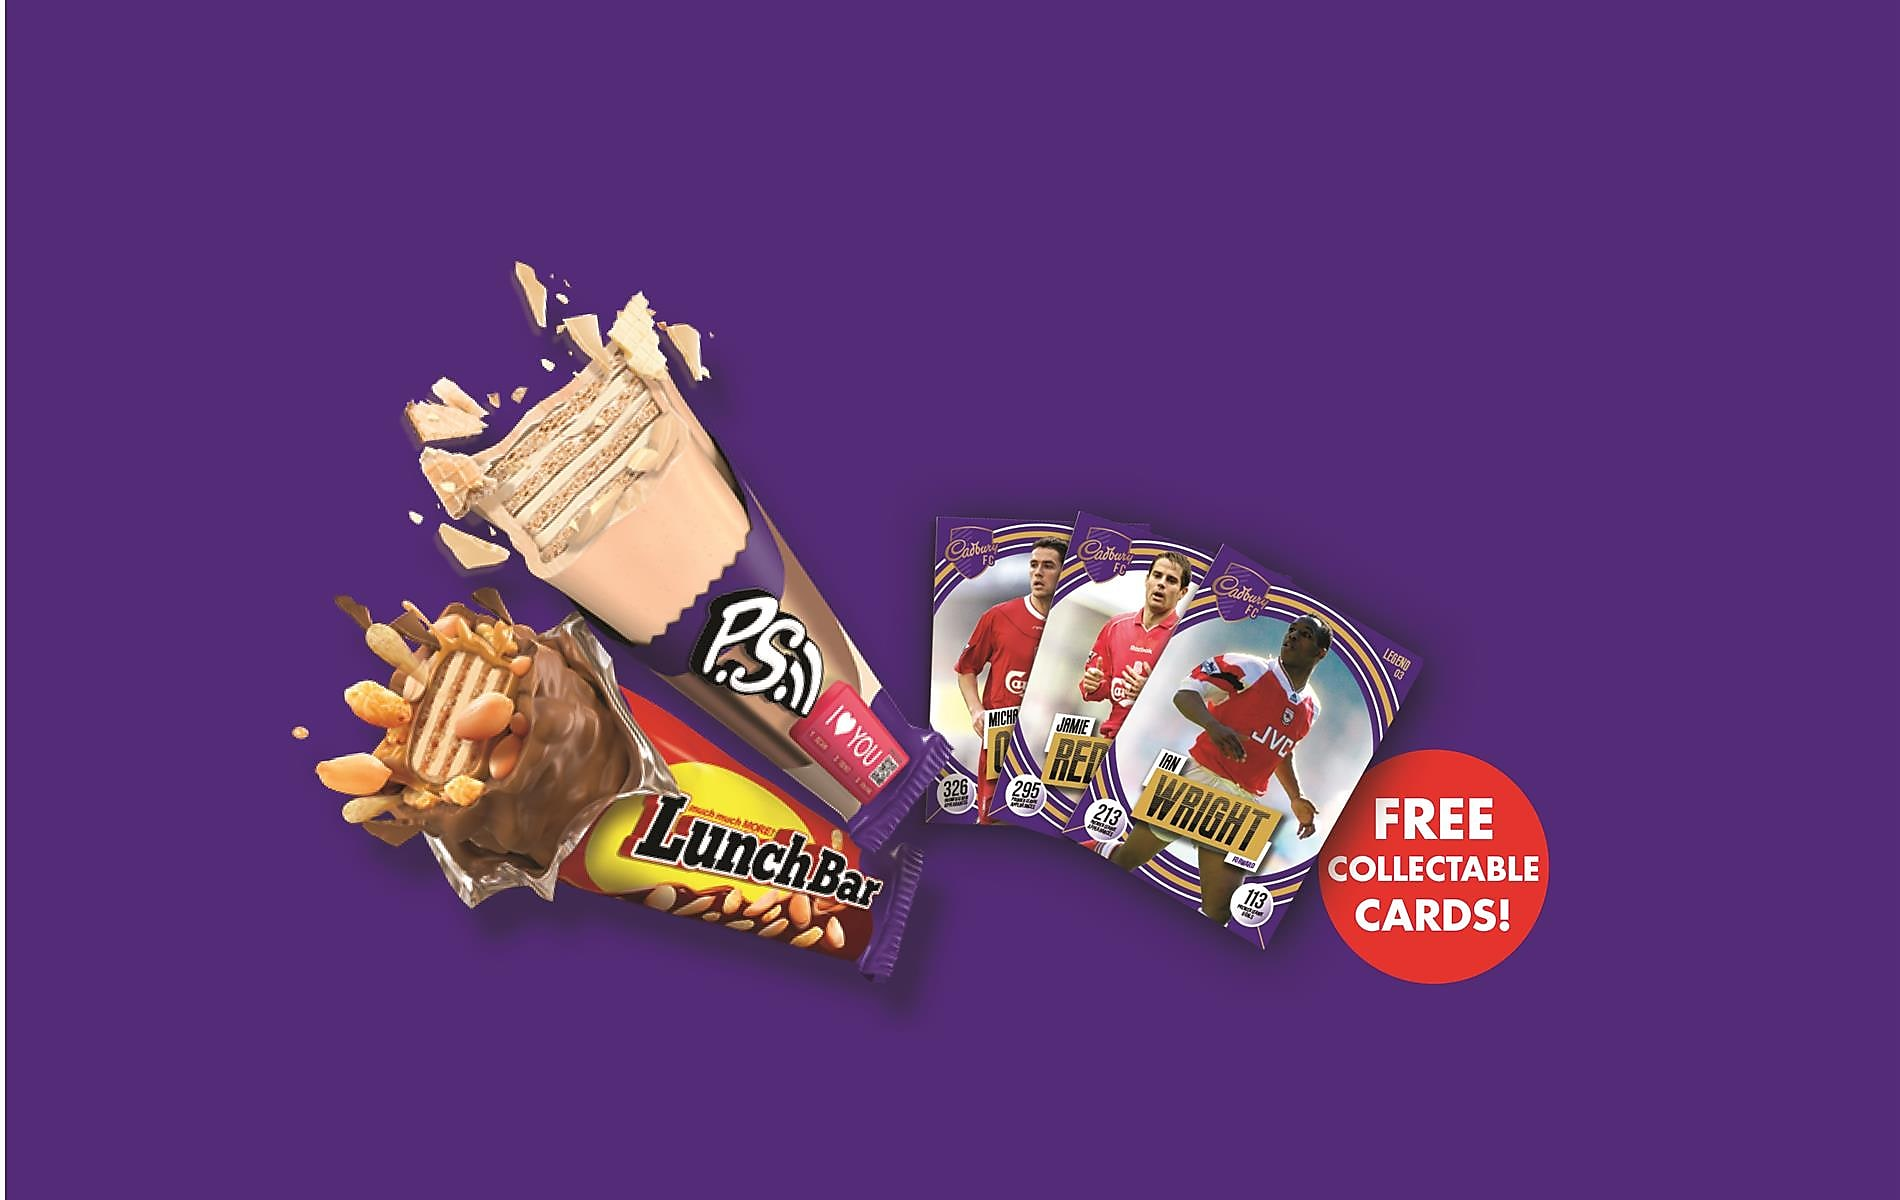 Buy Us And Get A Free Pack Of Collectable Cards